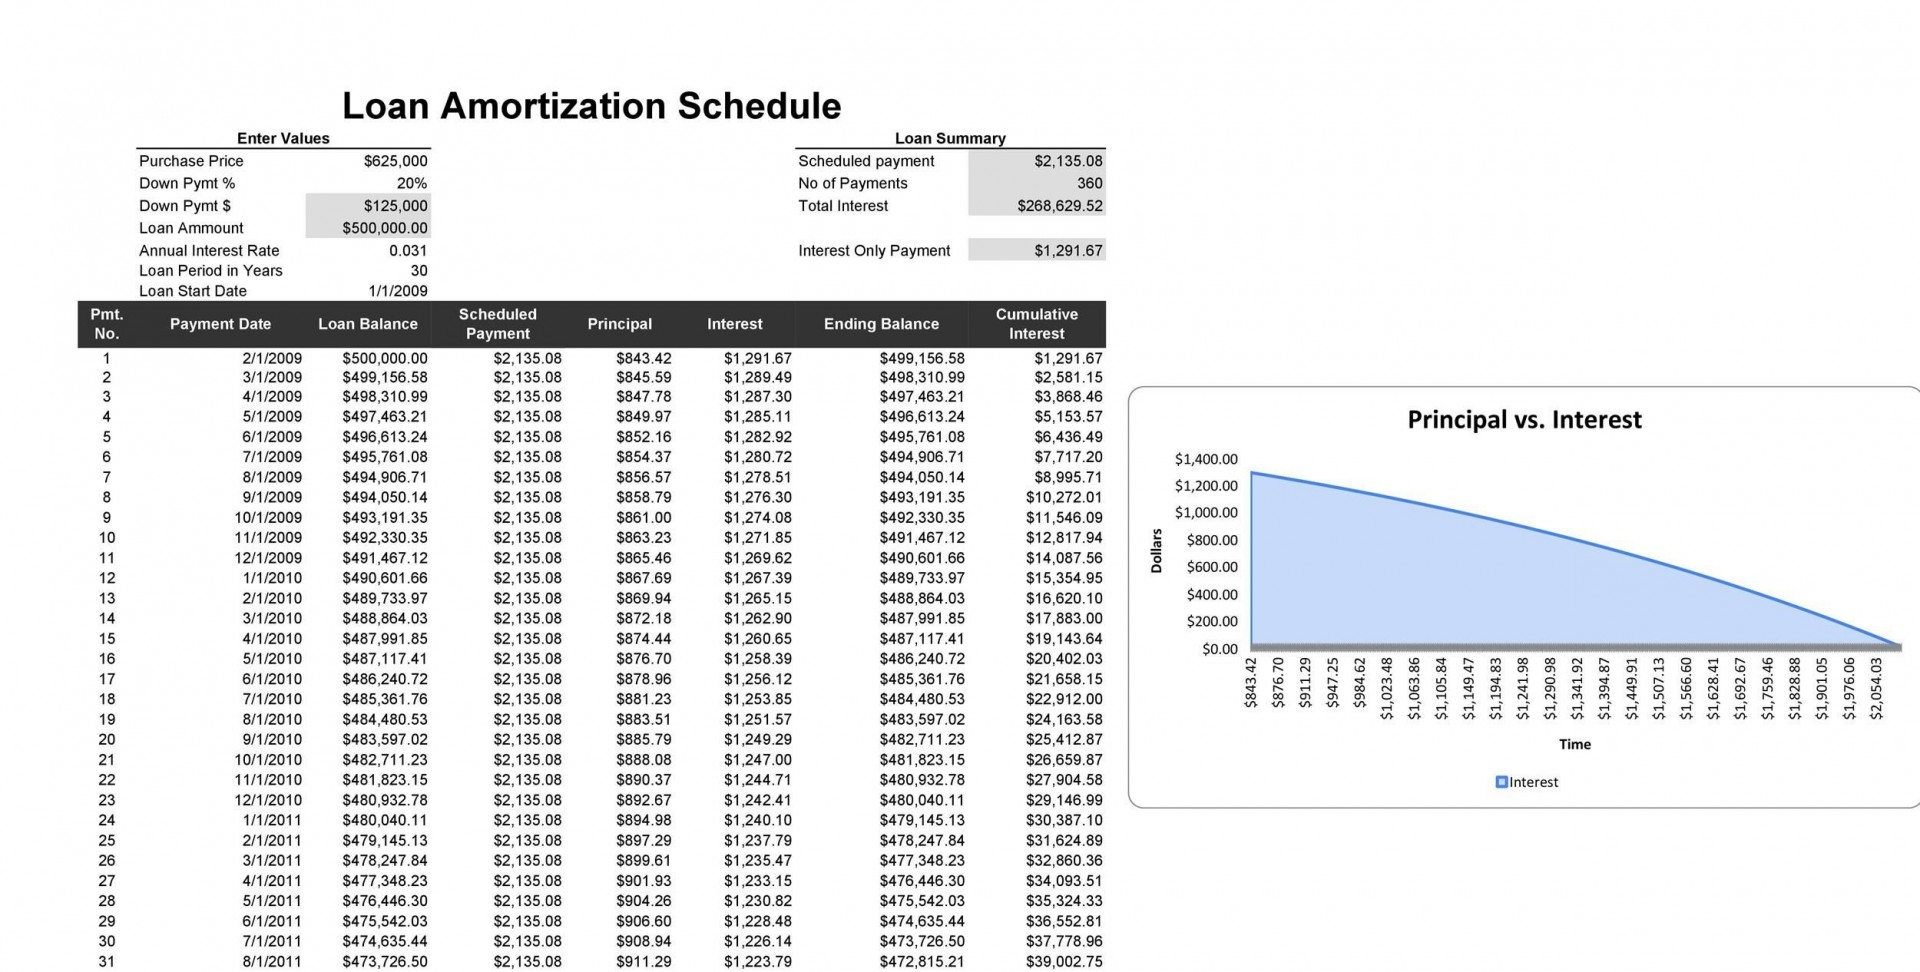 005 Fearsome Loan Amortization Template Excel Example  Schedule Free Download1920